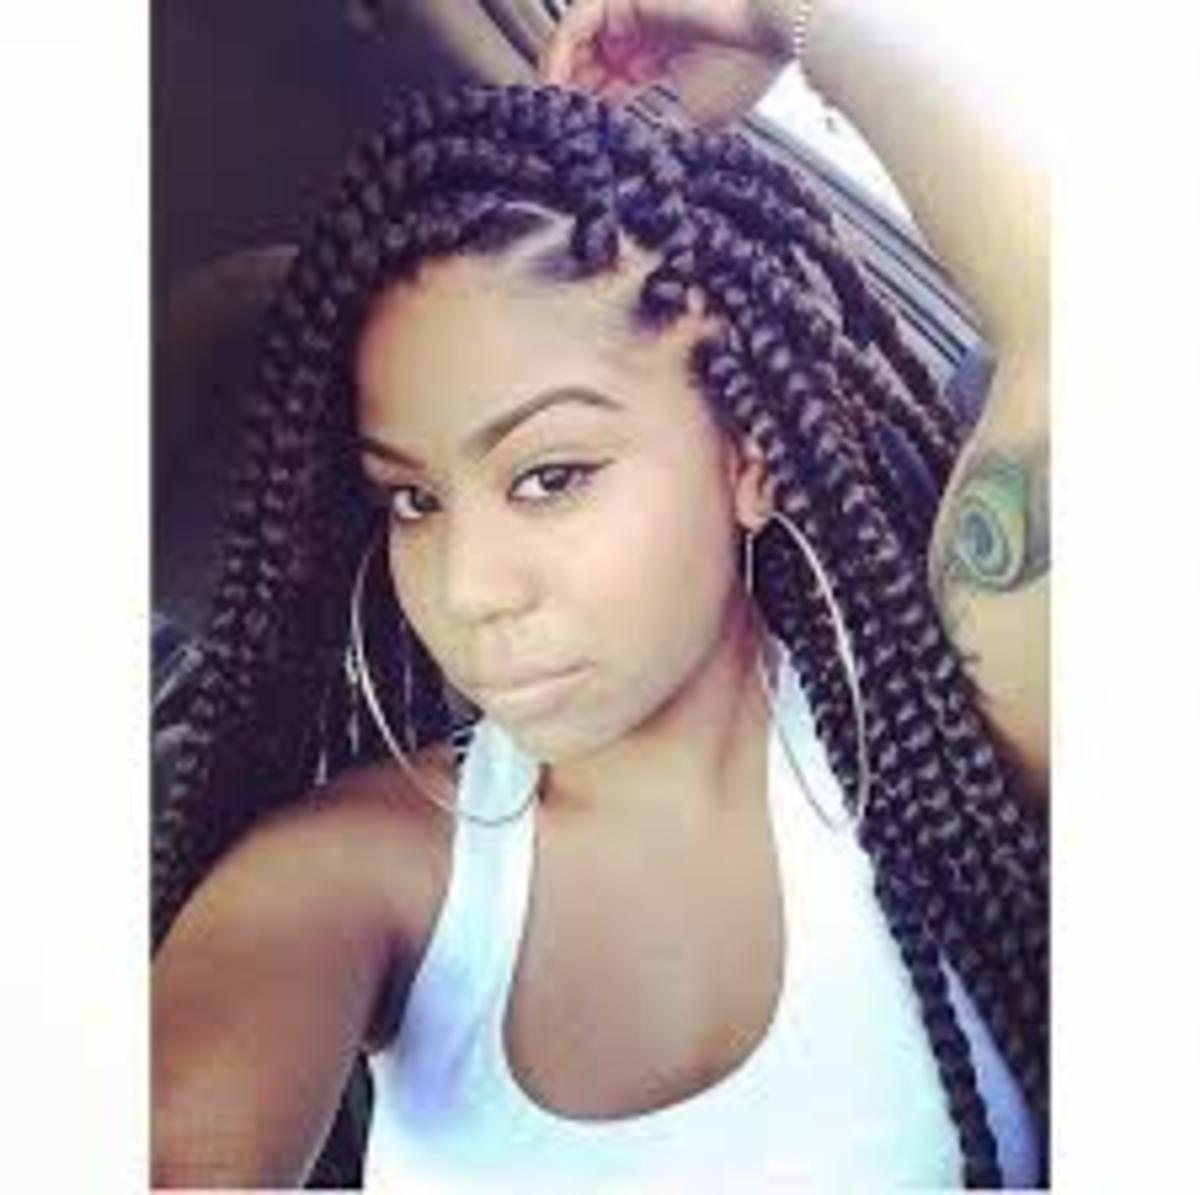 box braids, micro braids, Havana twists (my preferred method -super cute- just don't keep them in too long, they can start to reek)